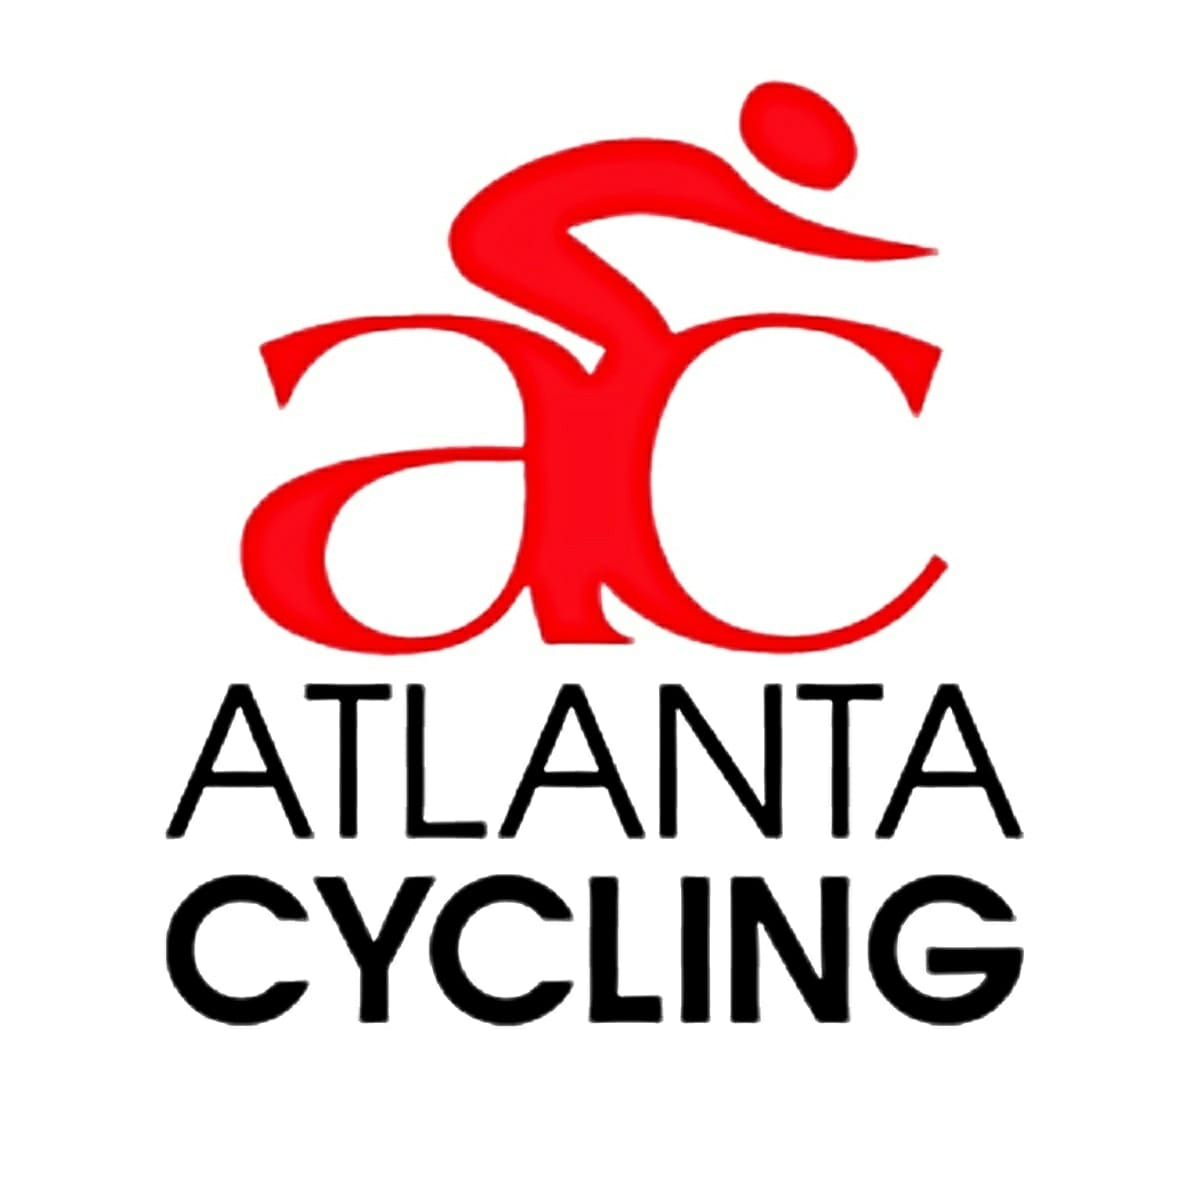 Atlanta Cycling